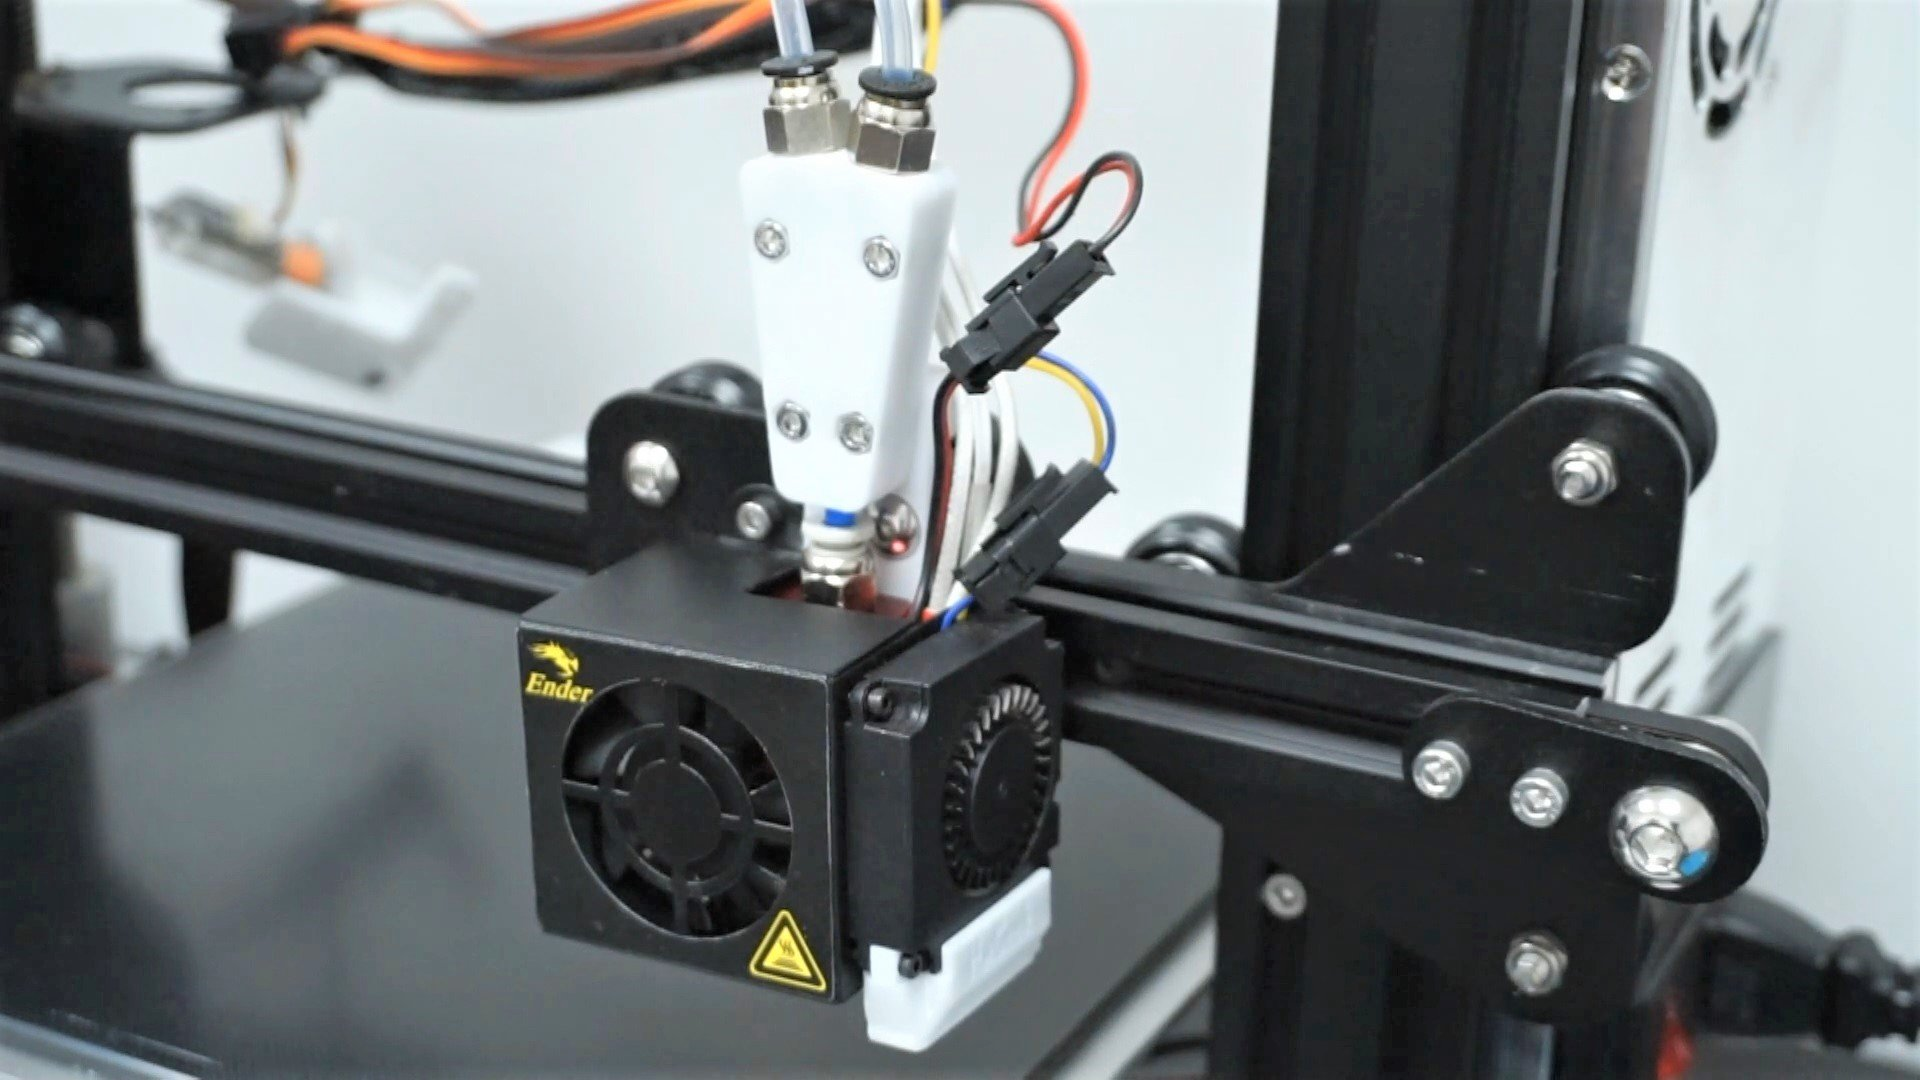 Ender 3 (Pro/V2) Dual Extruder: Is It Possible to Upgrade? | All3DP